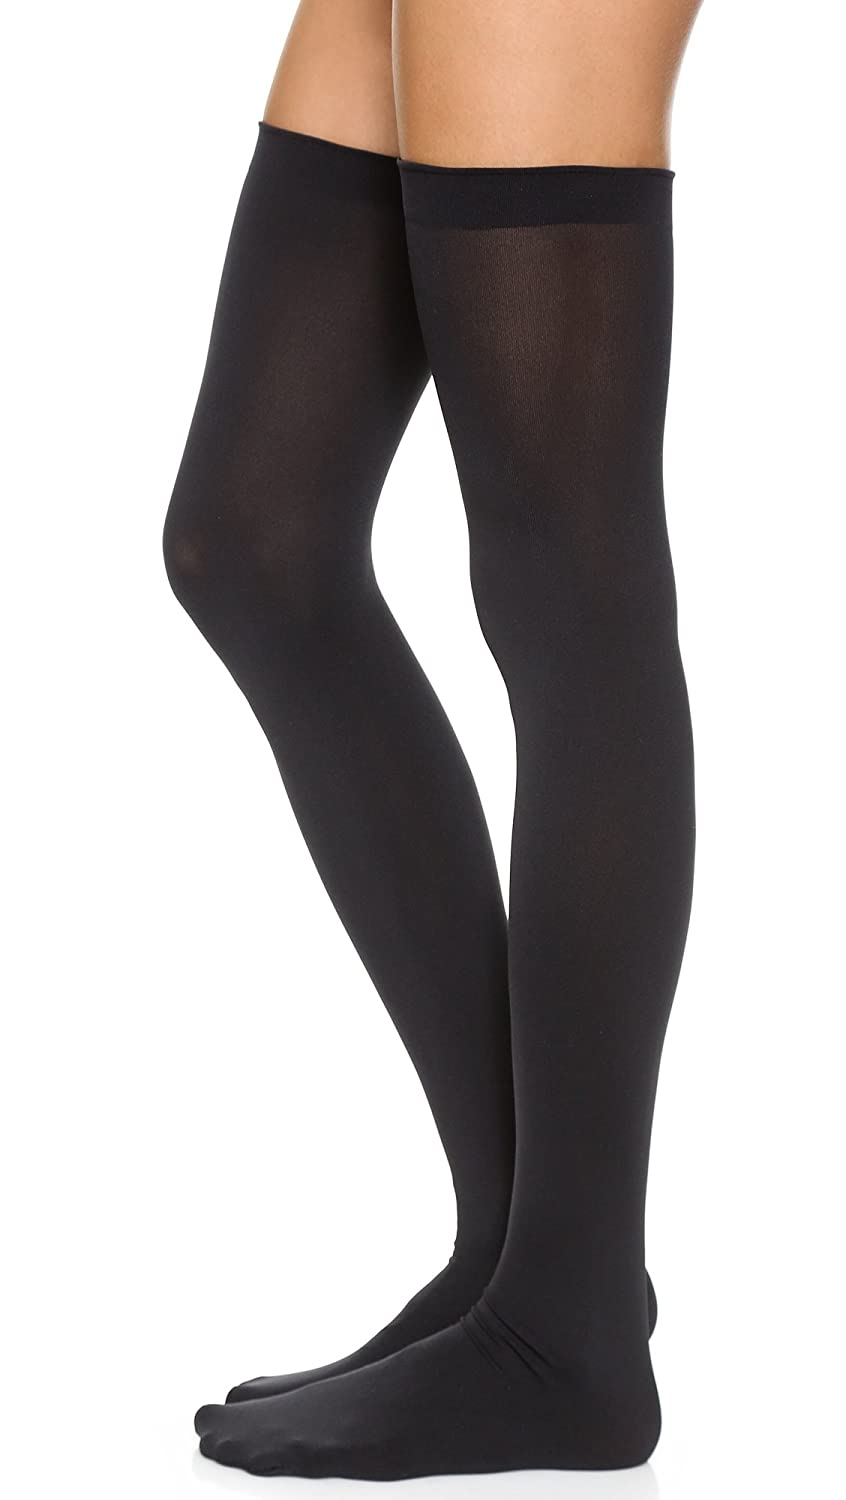 Vintage Socks | 1920s, 1930s, 1940s, 1950s, 1960s History Wolford Womens Fatal 80 Seamless Stay Up Tights $57.00 AT vintagedancer.com